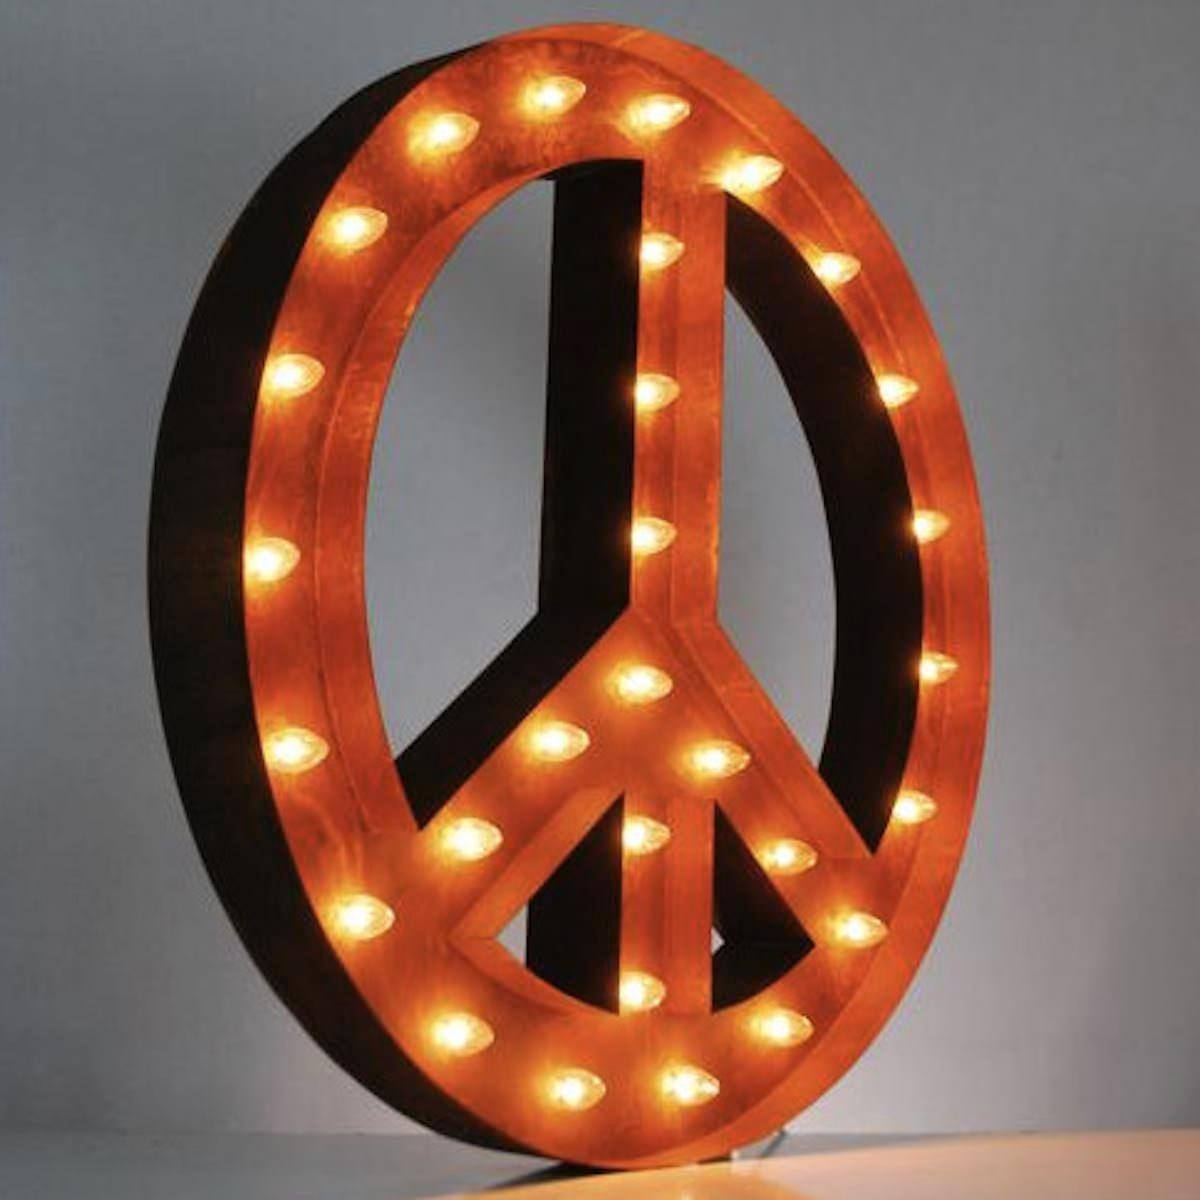 ... Marquee Symbol Lights - 36 Large Peace Sign Vintage Marquee Sign With  Lights (Rustic ...